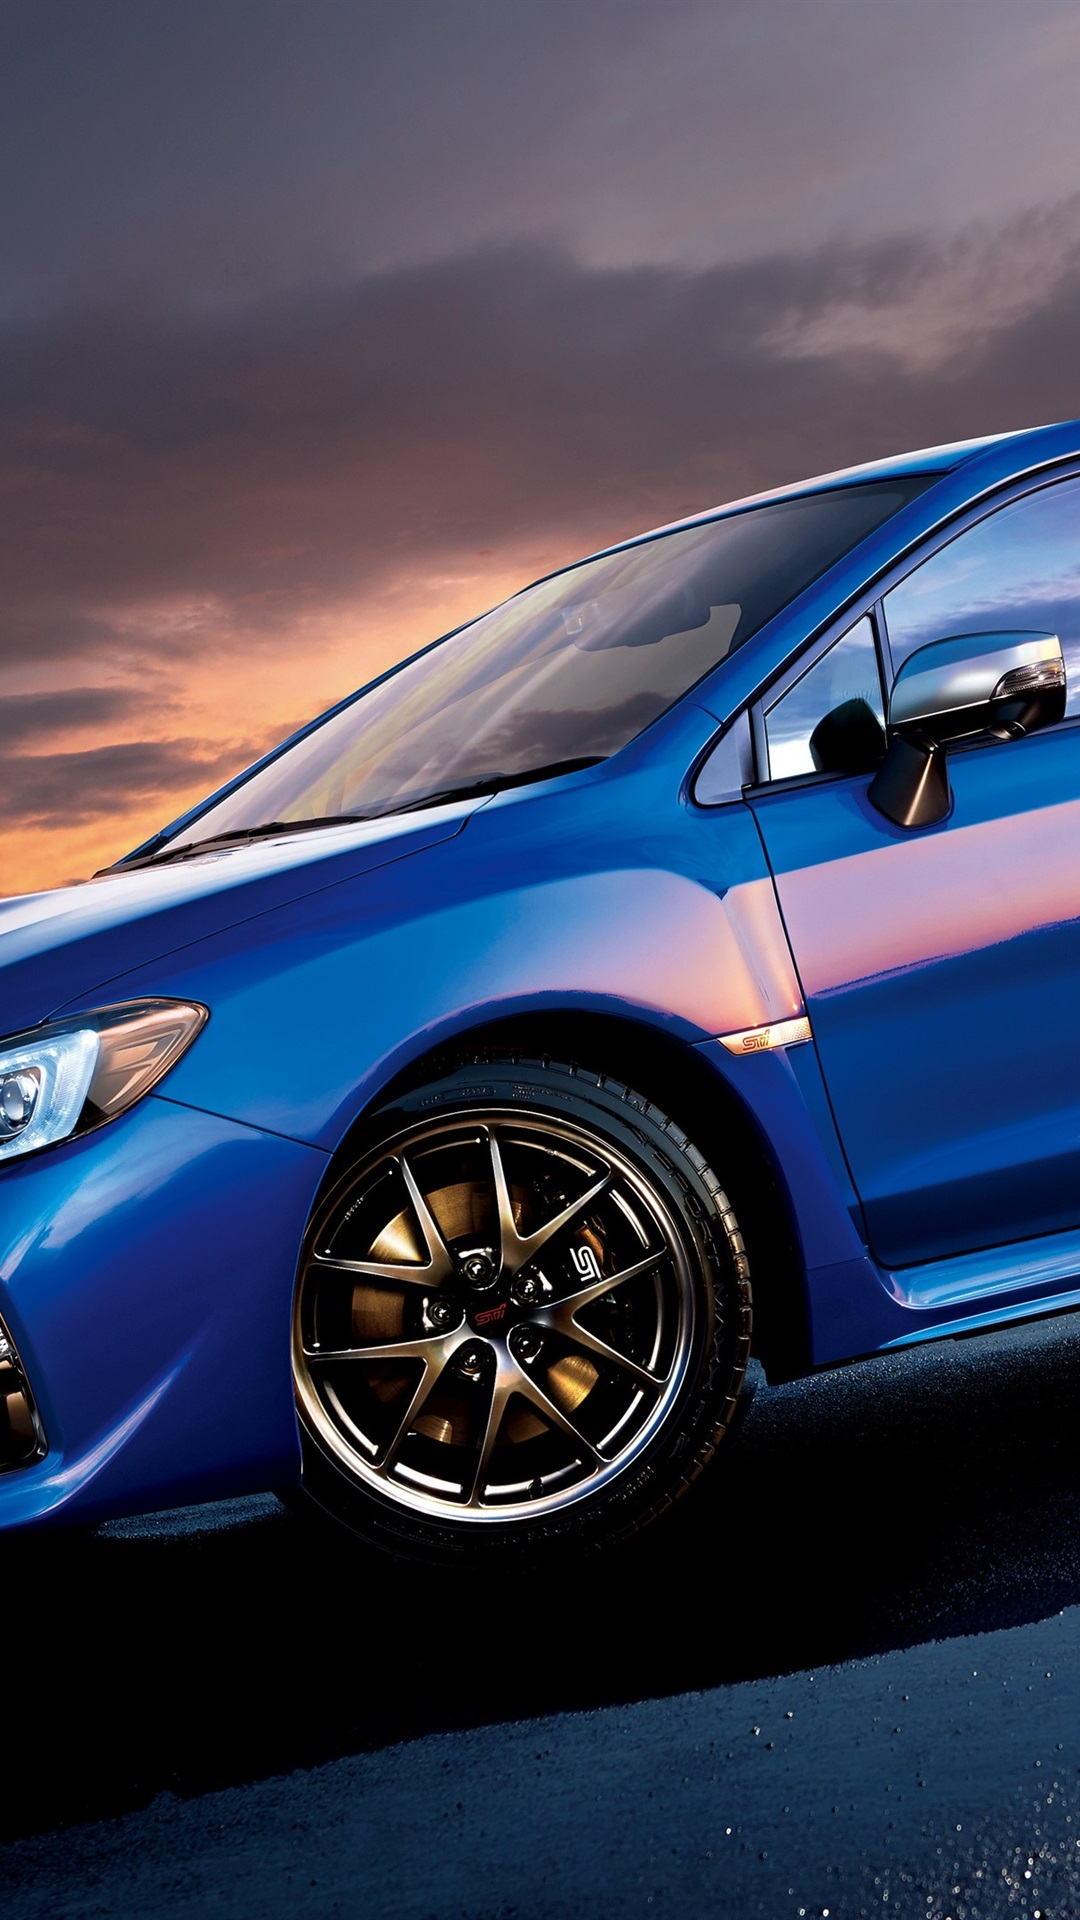 Subaru Sti Wrx Blue Car Side View 1080x1920 Iphone 8 7 6 6s Plus